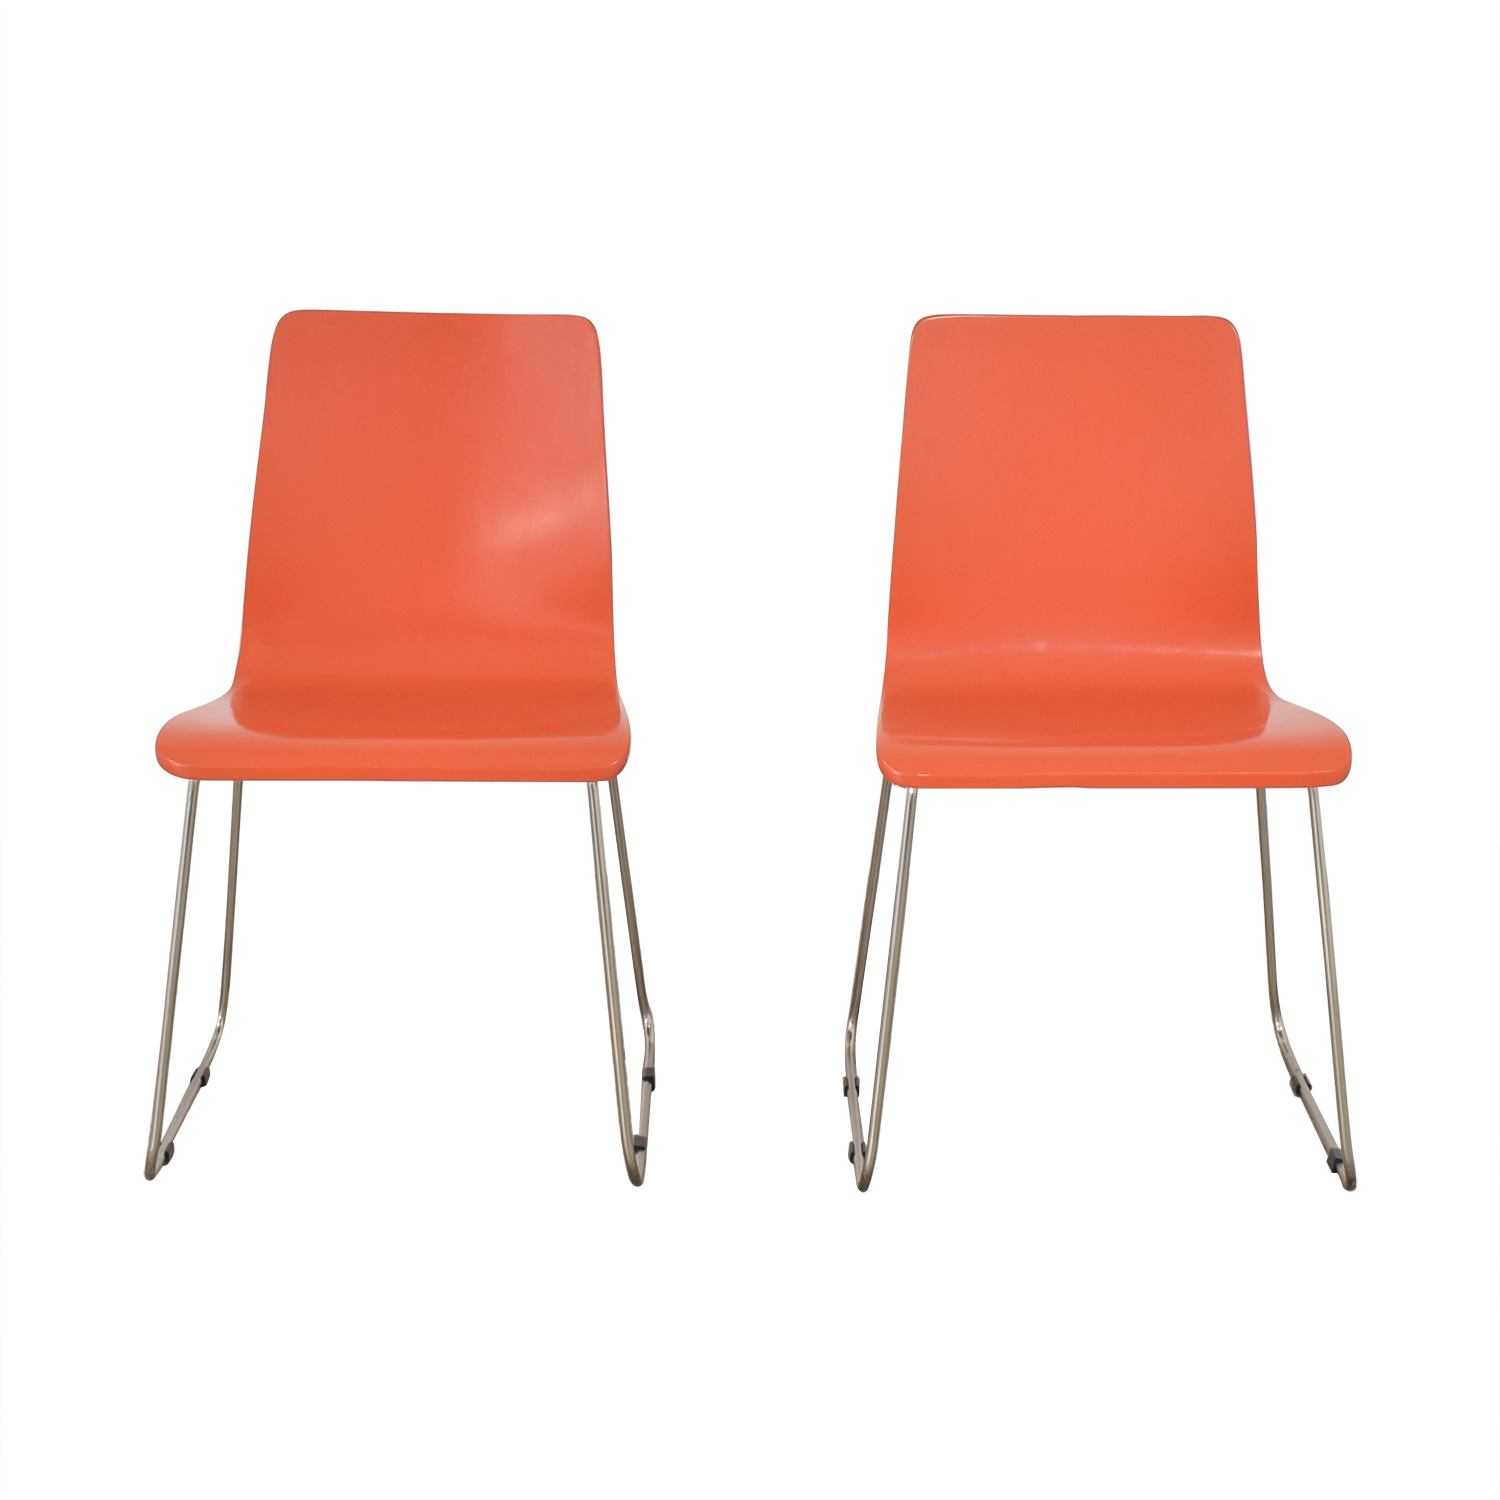 CB2 Side Chairs / Chairs